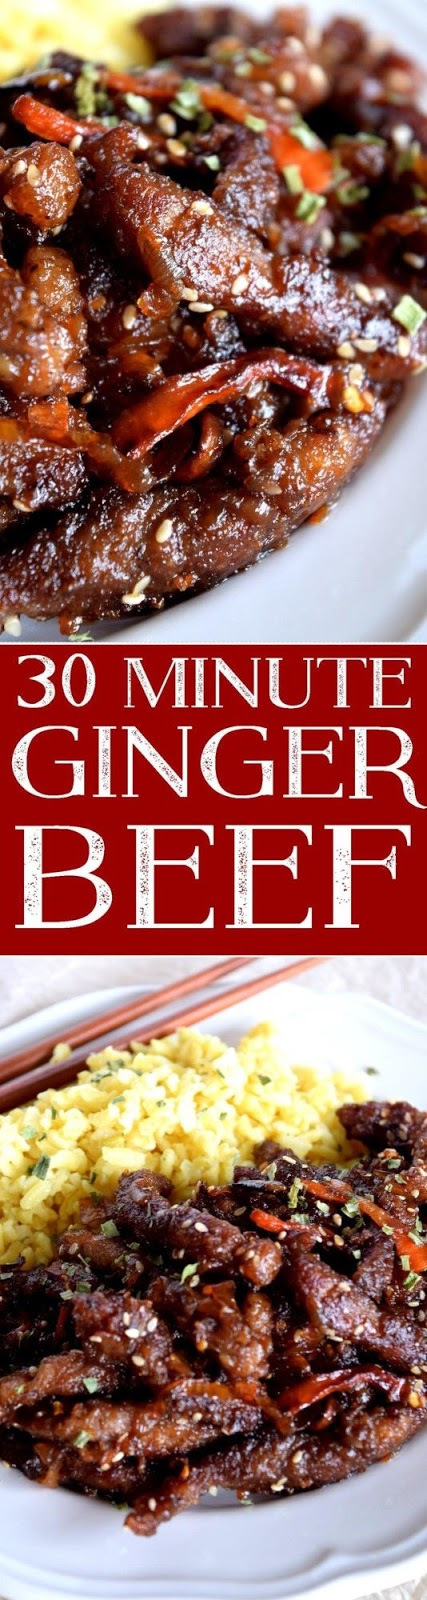 30 Minute Ginger Beef - Beef Recipes